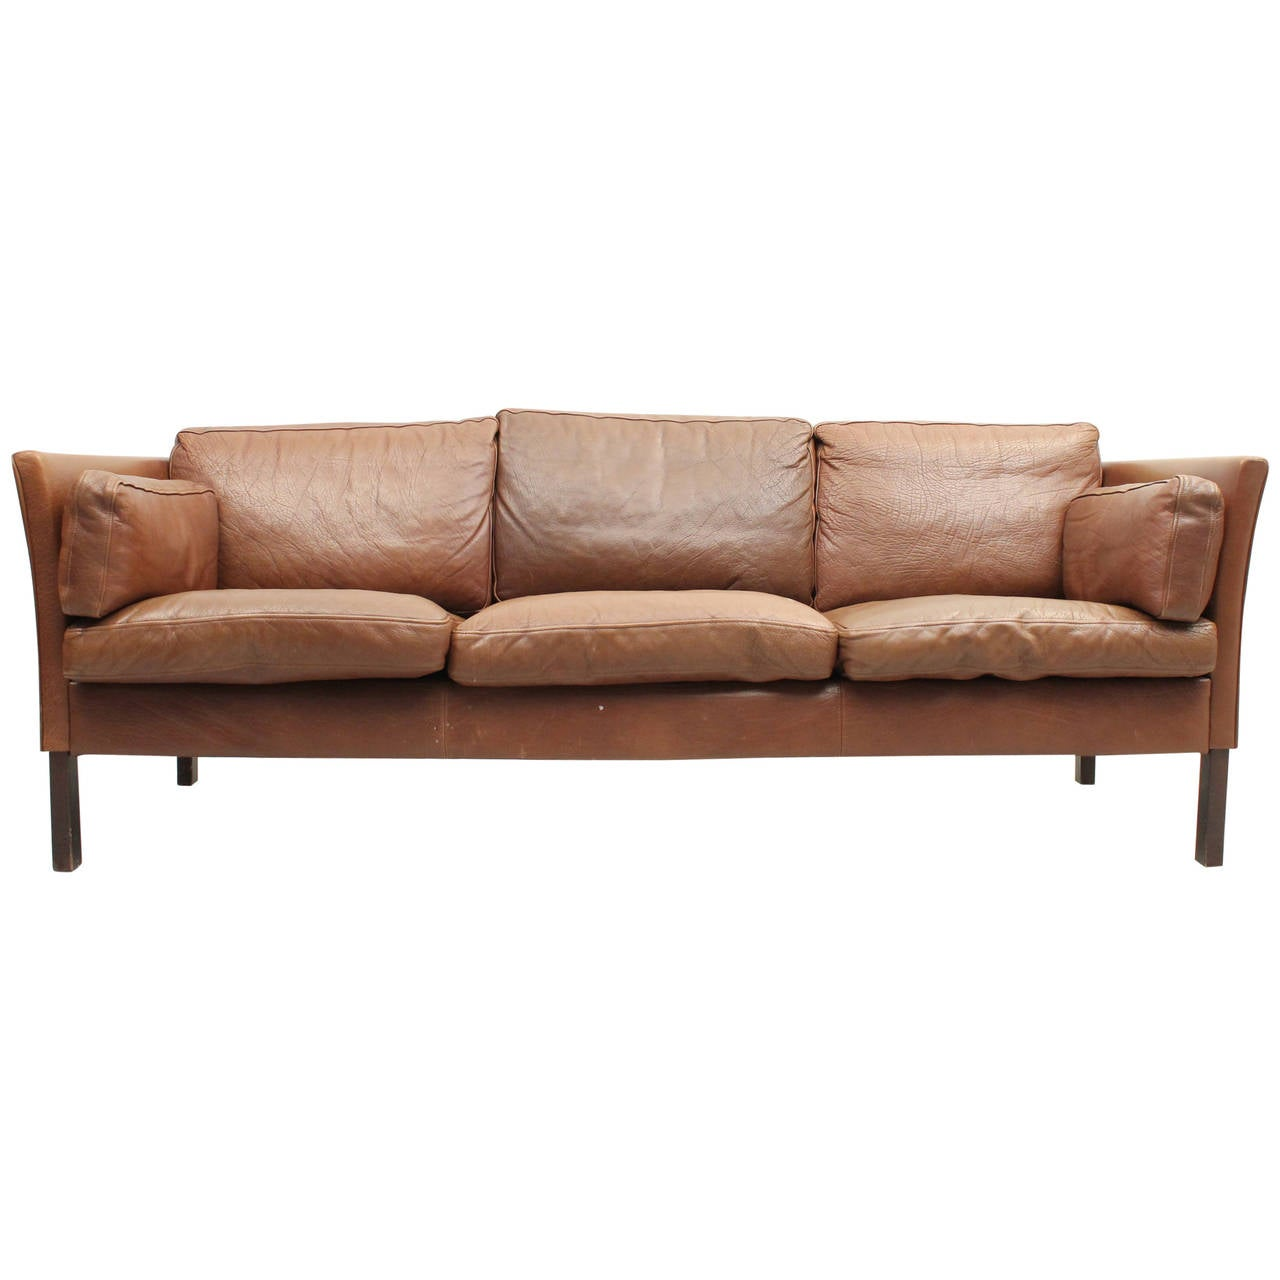 Danish mid century modern leather sofa at 1stdibs for Contemporary leather furniture